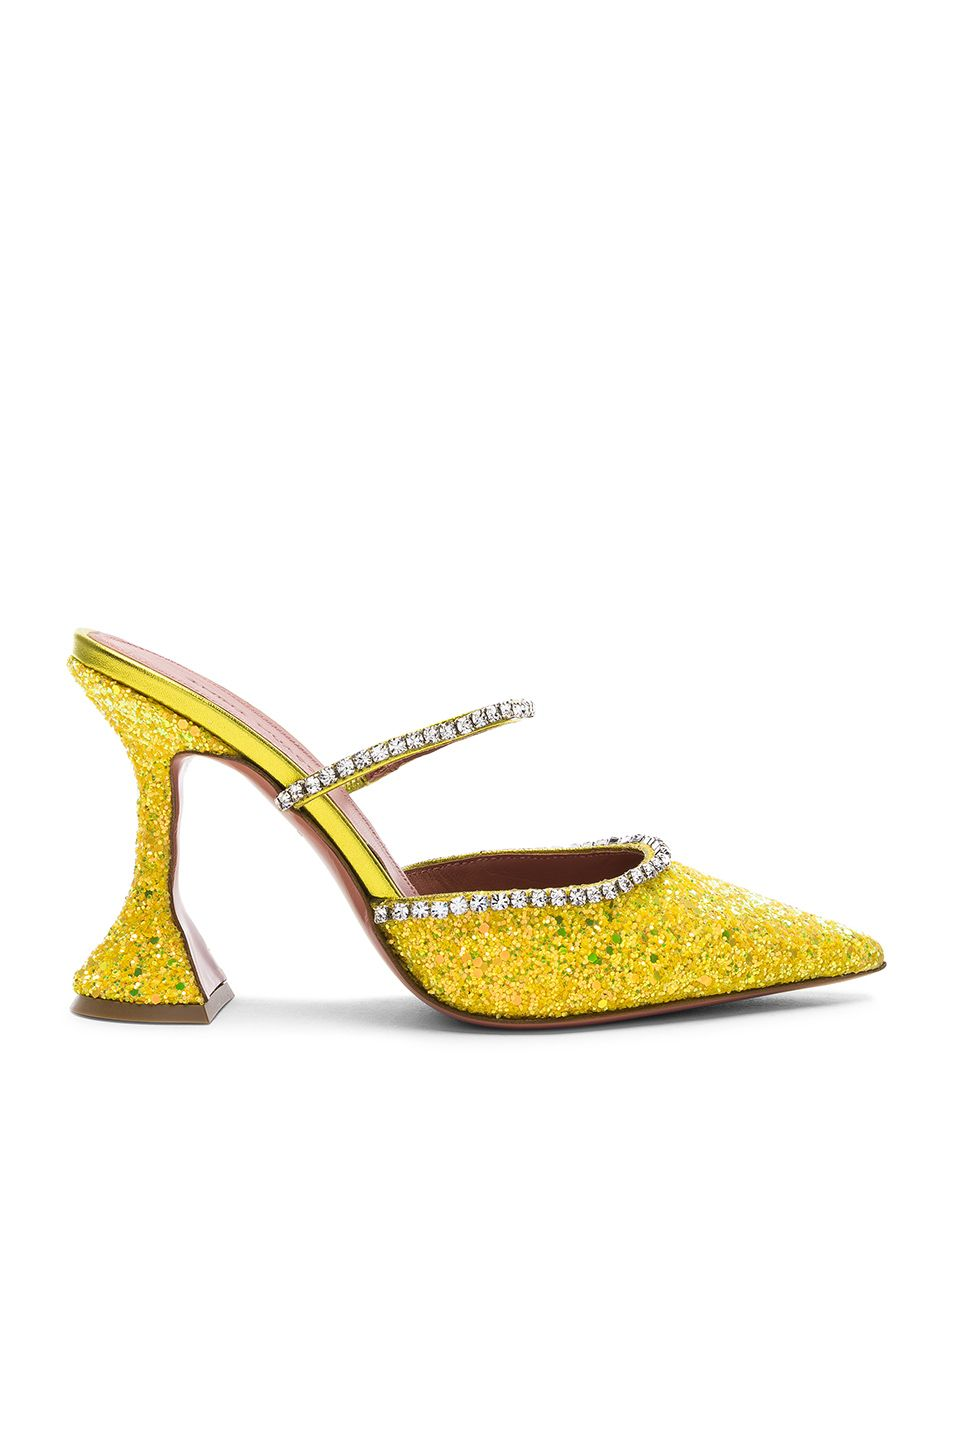 6567981195 Image 1 of AMINA MUADDI Glitter Gilda Mules in Yellow & Crystals | F ...